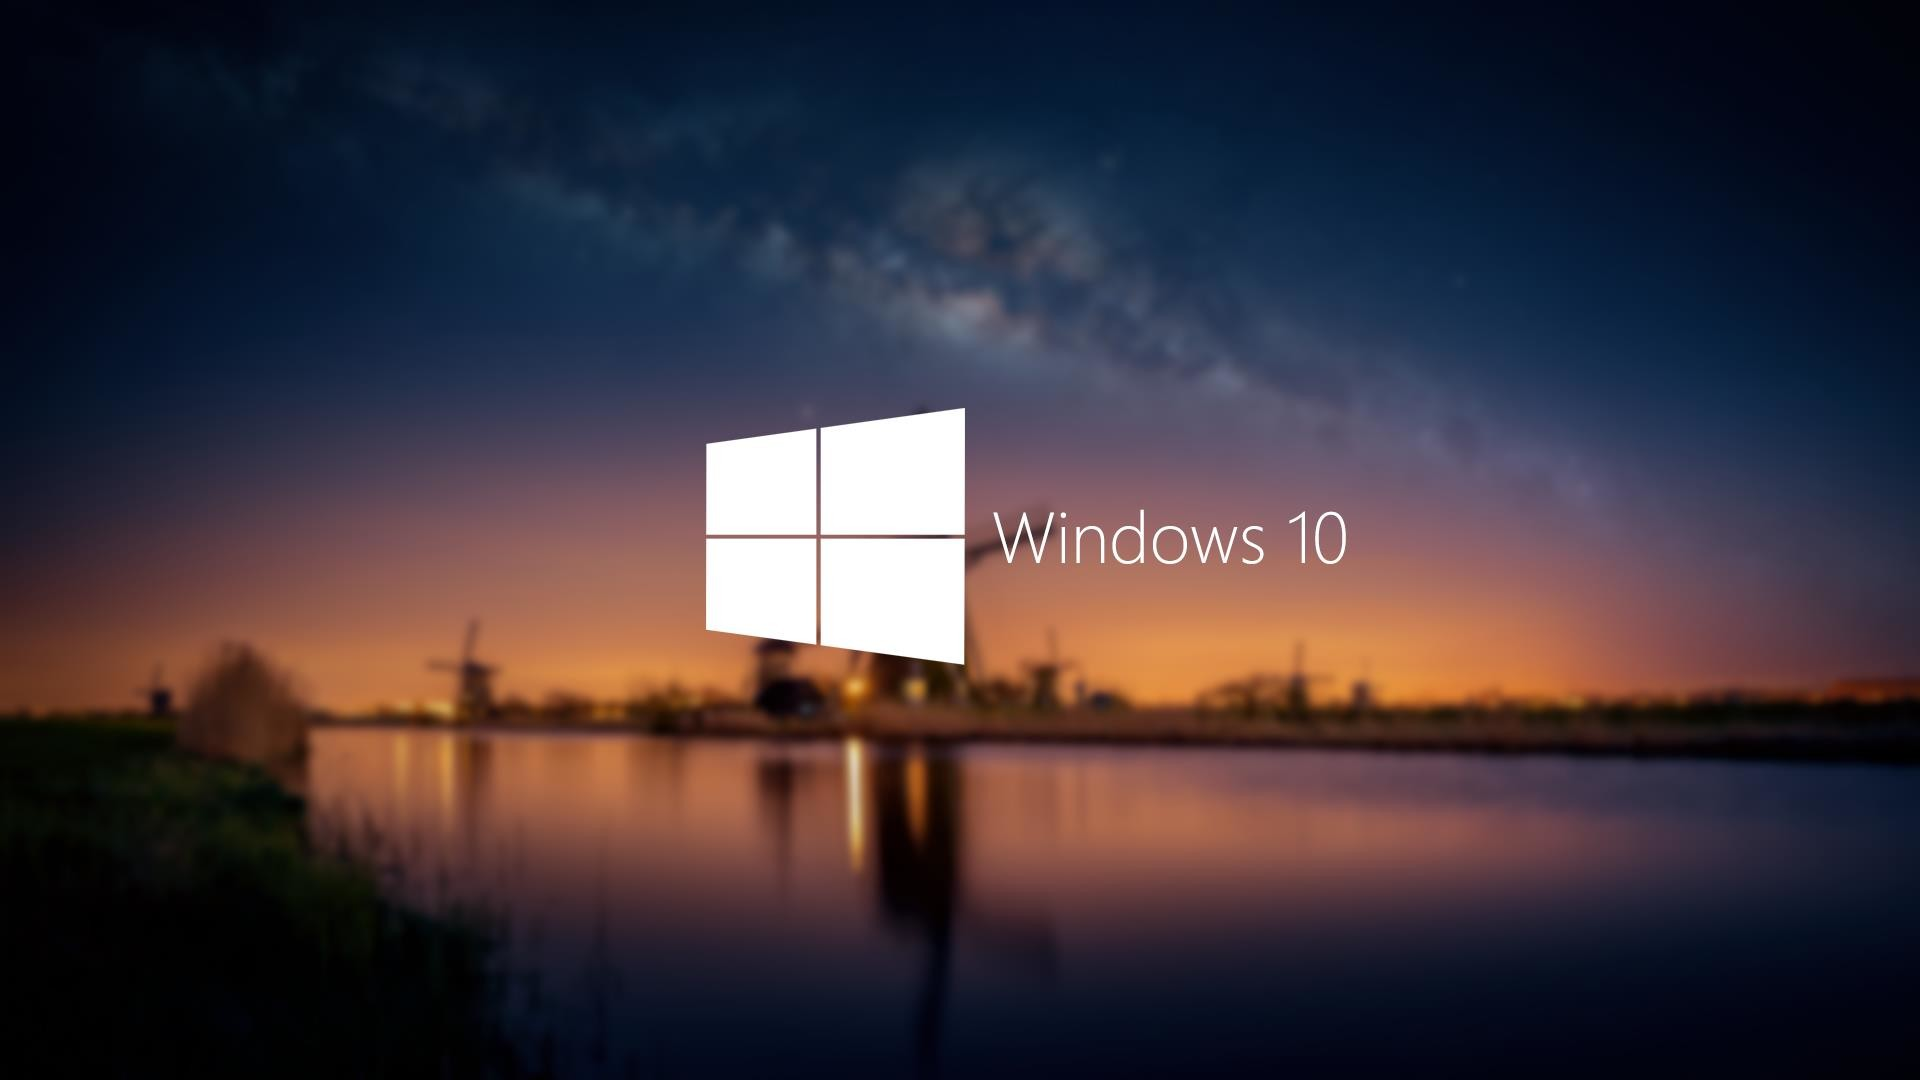 1920x1080 Windows 10 Abstract Desktop Wallpaper